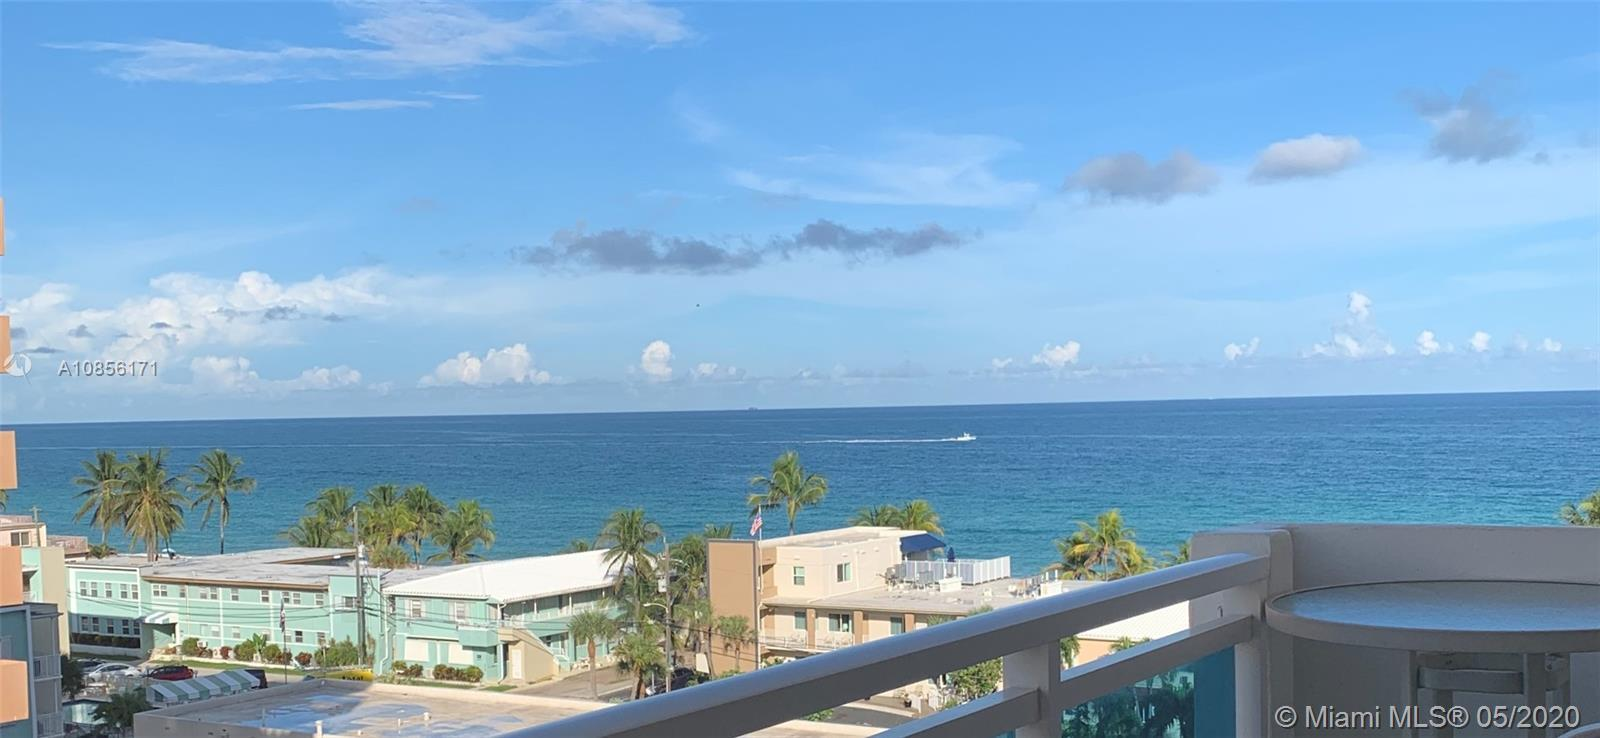 Spacious 2 bedrooms 2 bath condo in prestigious Wellington Towers with ocean view from every window